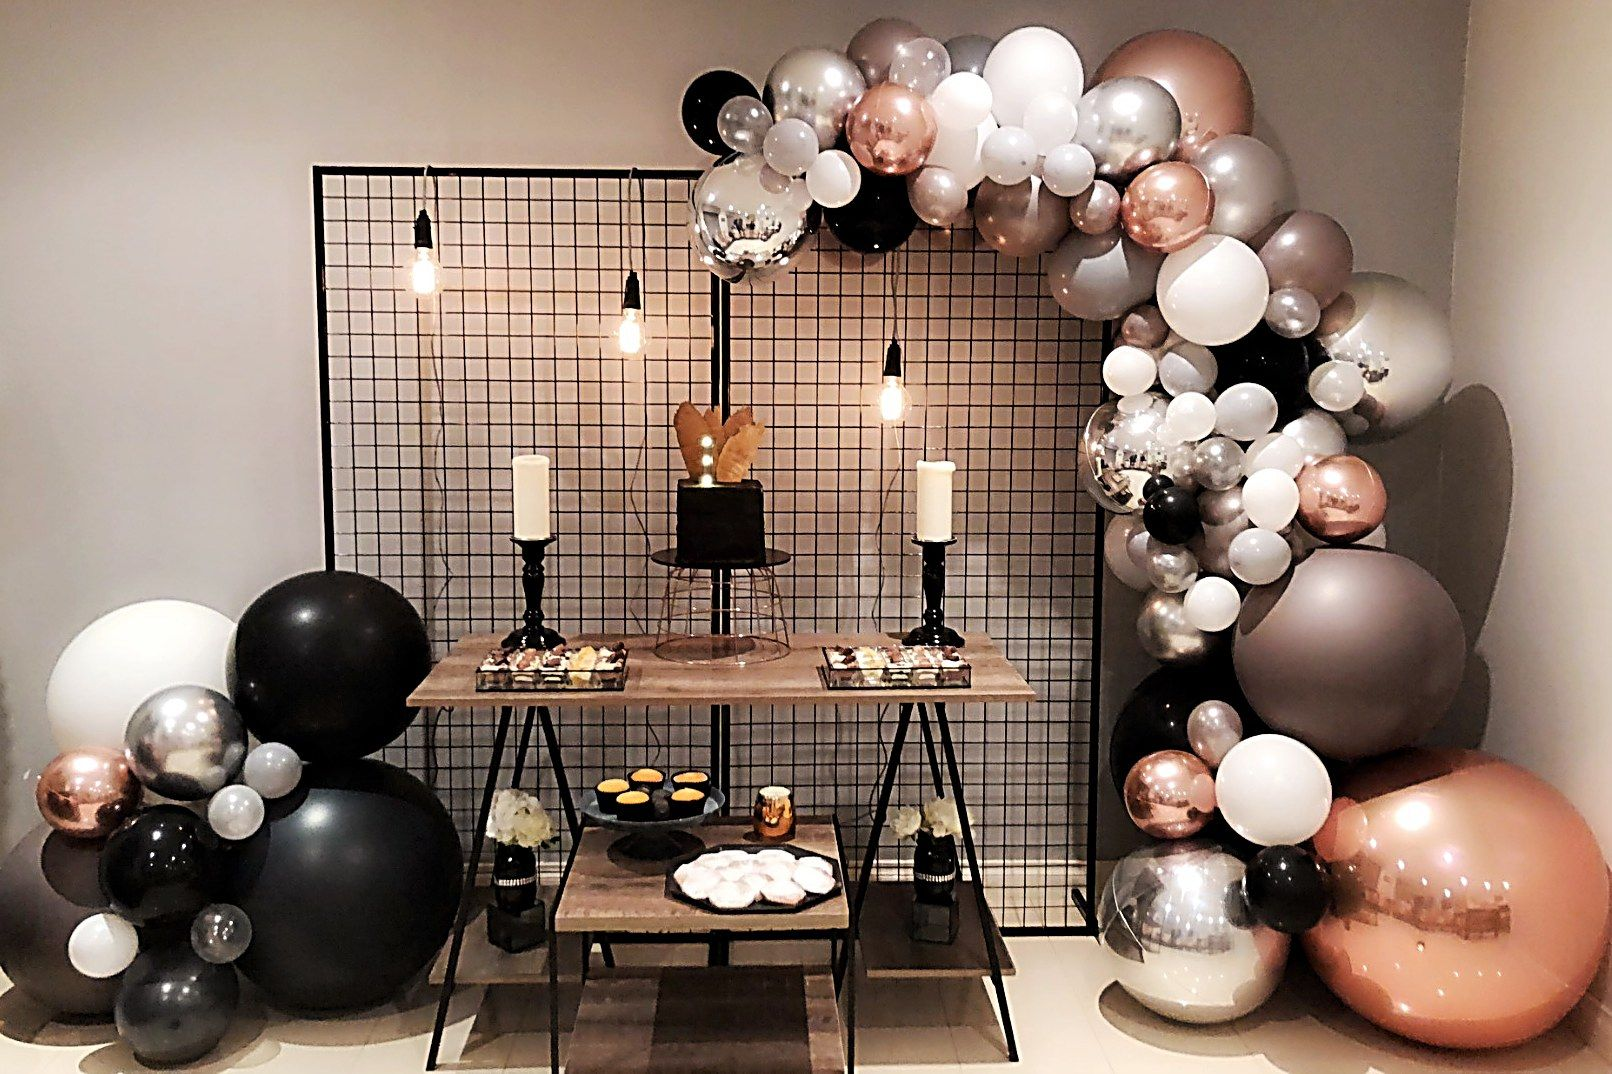 20th Birthday Dessert Table And Balloon Backdrop By Stylish Soirees Perth Balloongarland Balloon Decorations Party Rose Gold Balloons Dessert Table Birthday